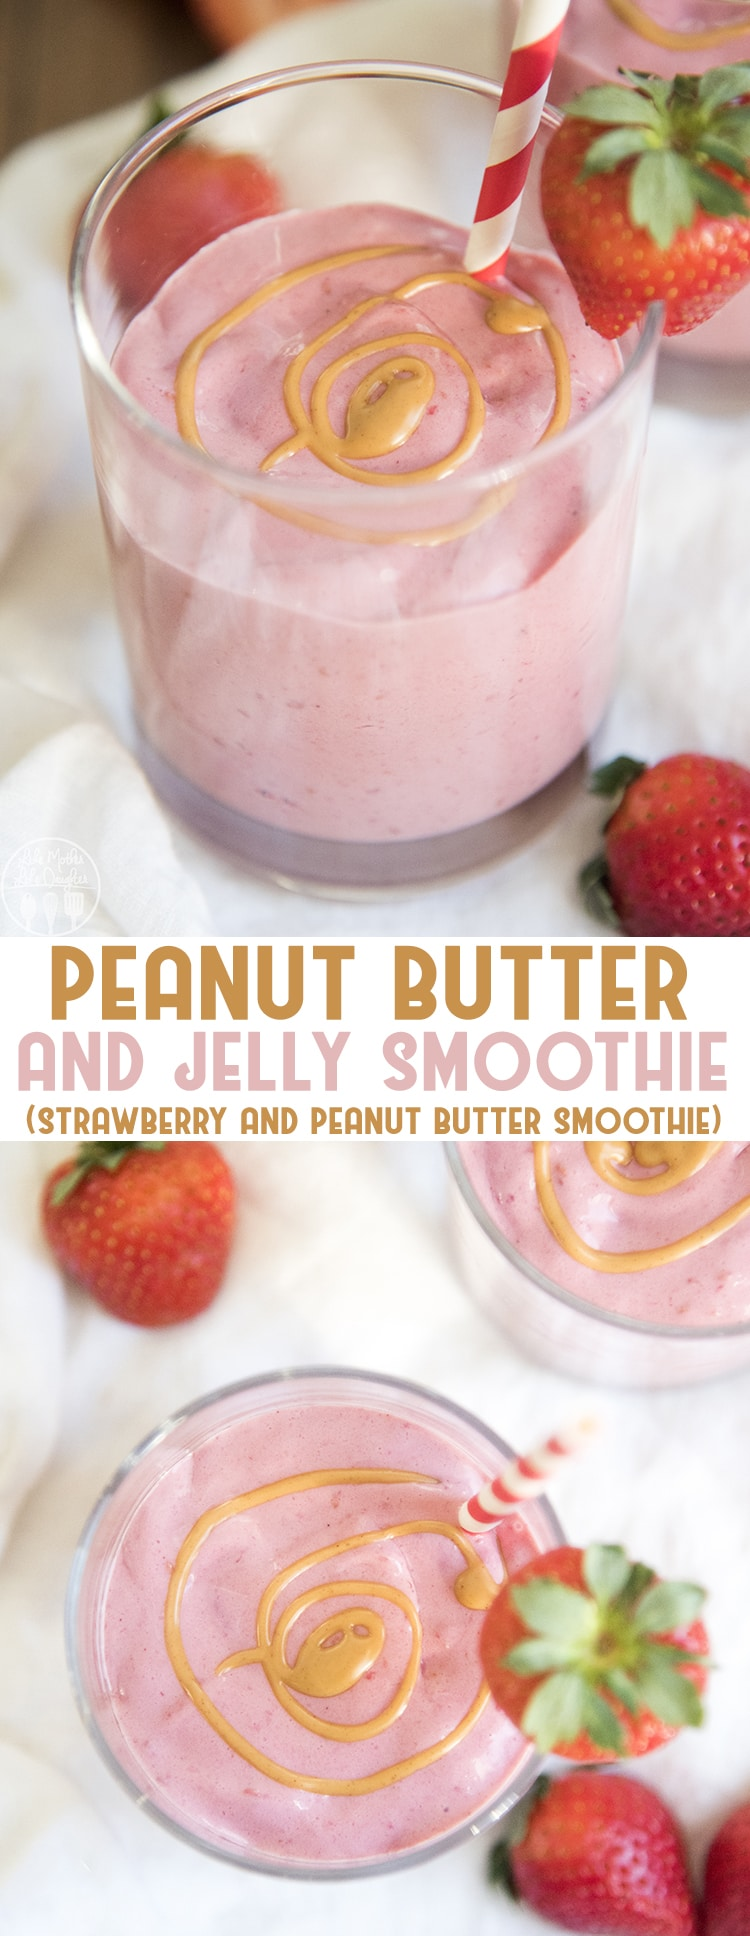 This peanut butter and jelly smoothie is perfect for a busy morning when you want a delicious breakfast that keeps you full until lunch. It's so easy and tastes just like a peanut butter and jelly sandwich!